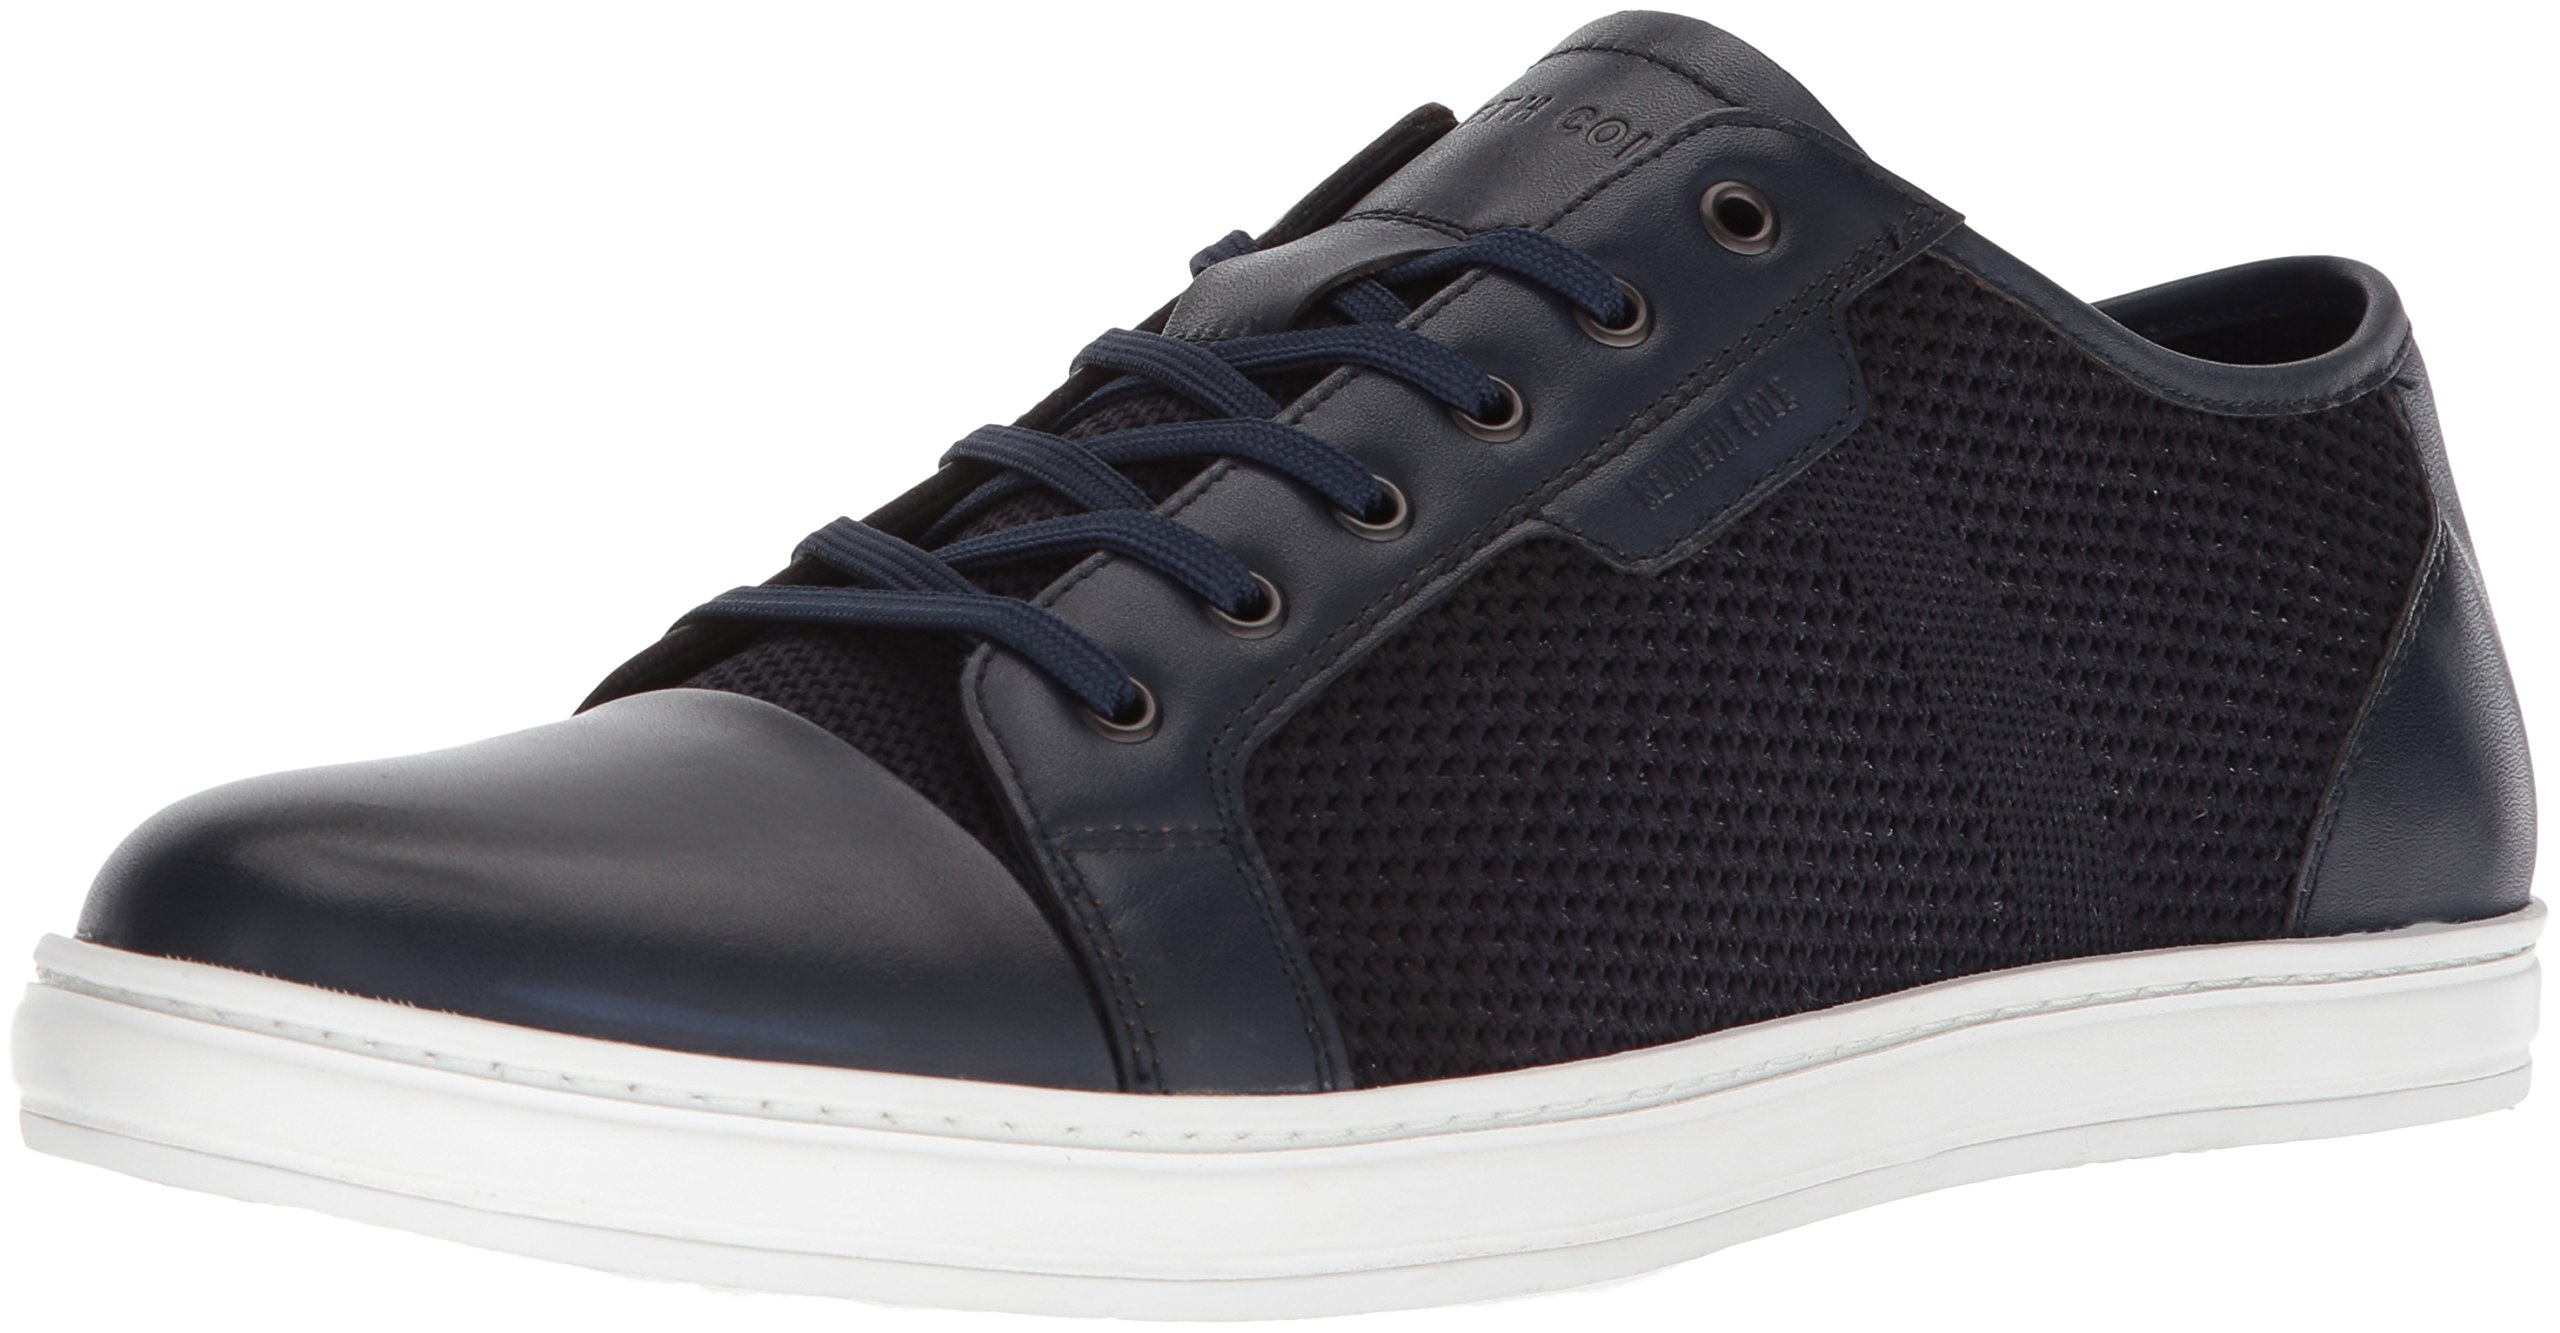 Kenneth Cole New York Men's Brand B Sneaker, Navy, 11.5 M US